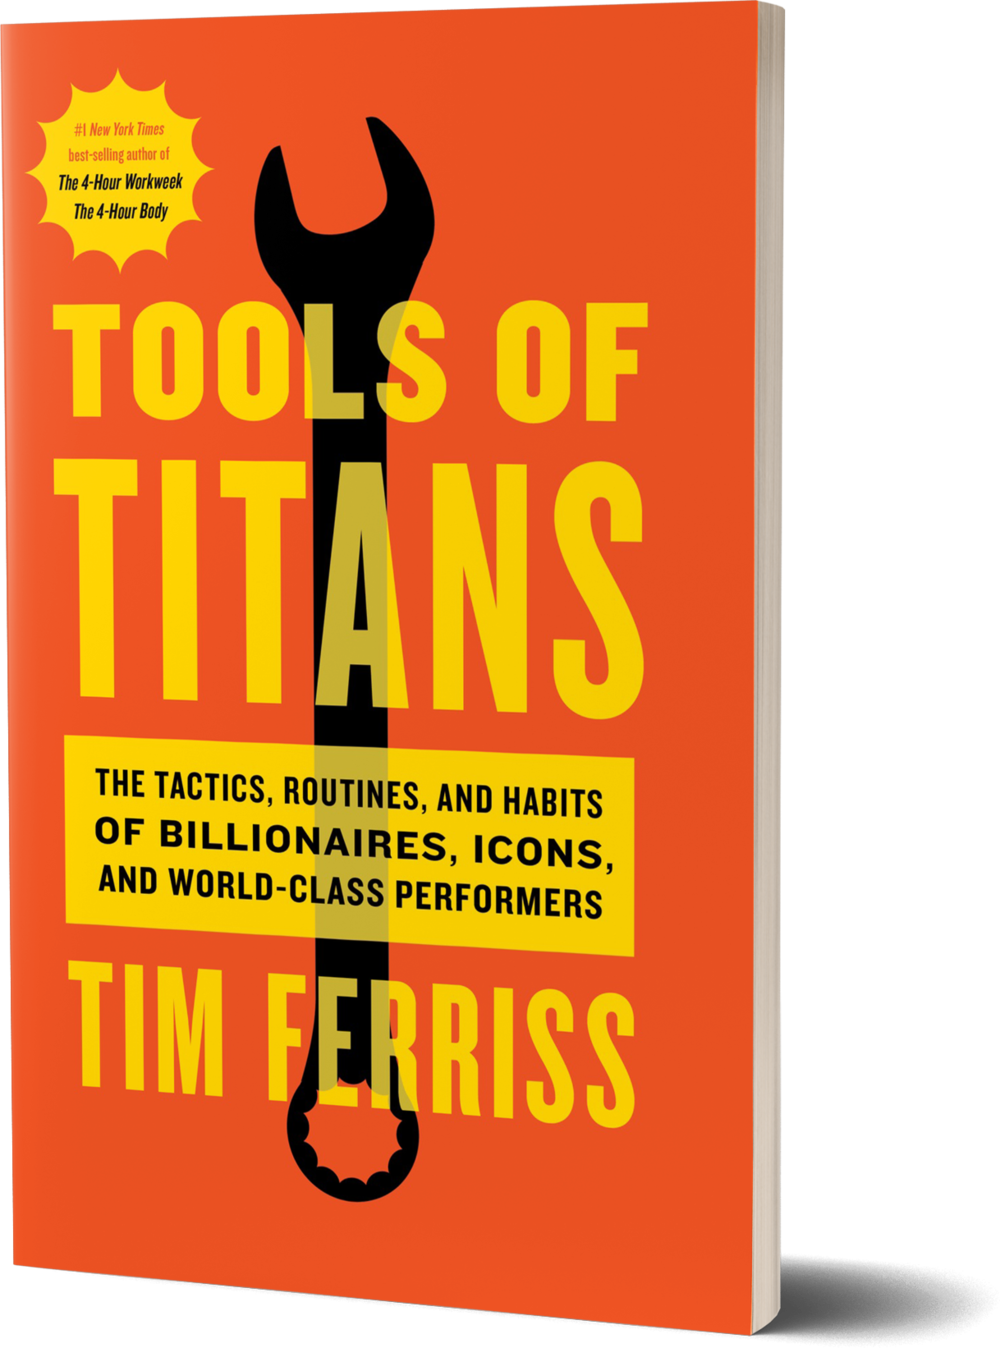 <i>Tools of Titans: The Tactics, Routines, and Habits of Billionaires, Icons, and World-Class Performers</i><br>by Time Ferris